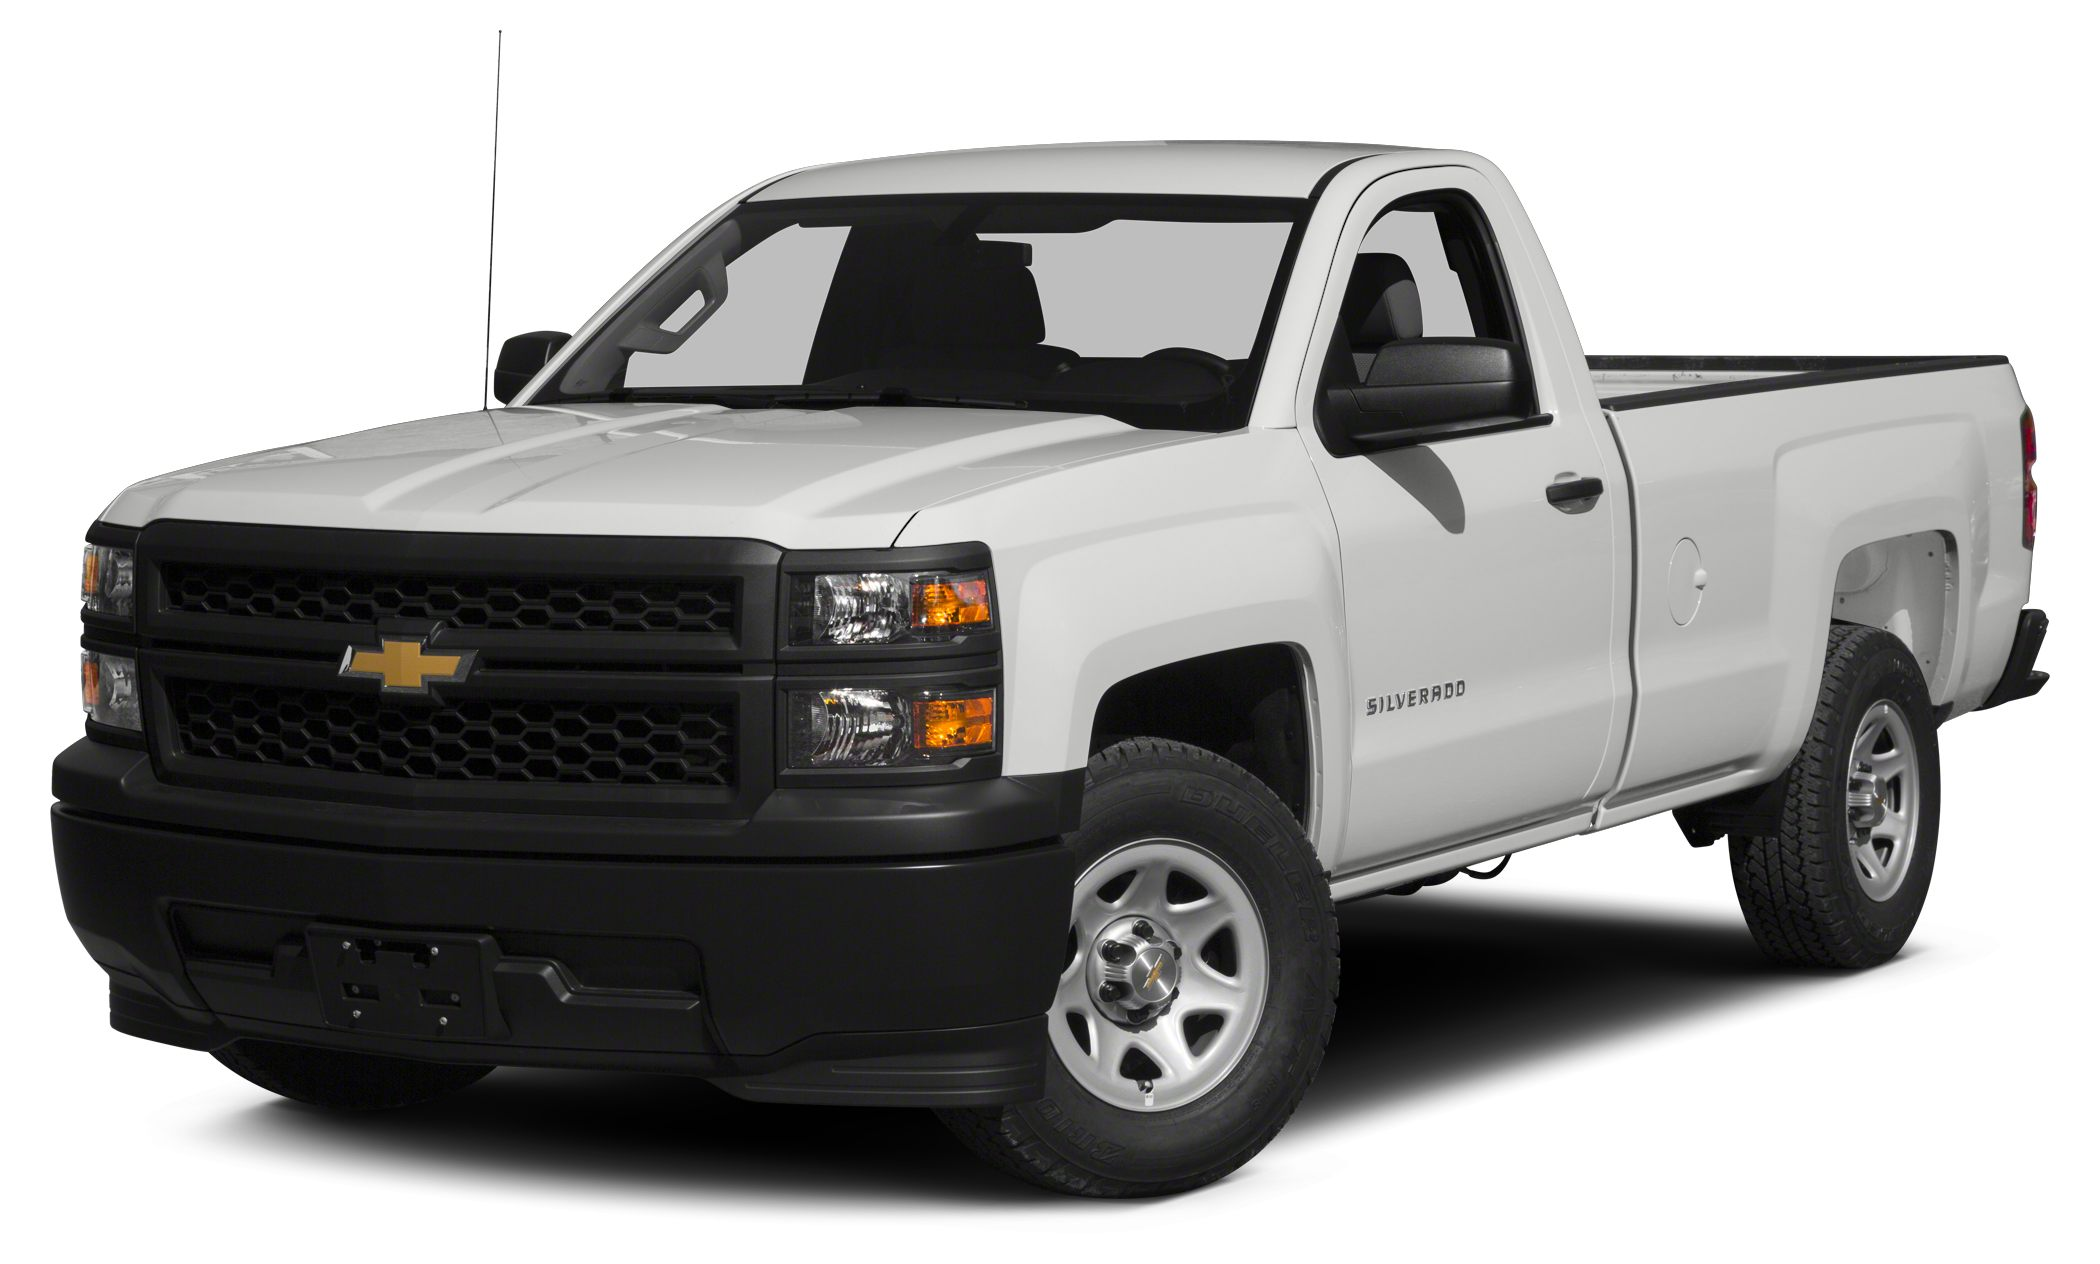 2015 Chevrolet Silverado 1500  Miles 127Color Summit White Stock 158427 VIN 1GCNCPEH5FZ40584